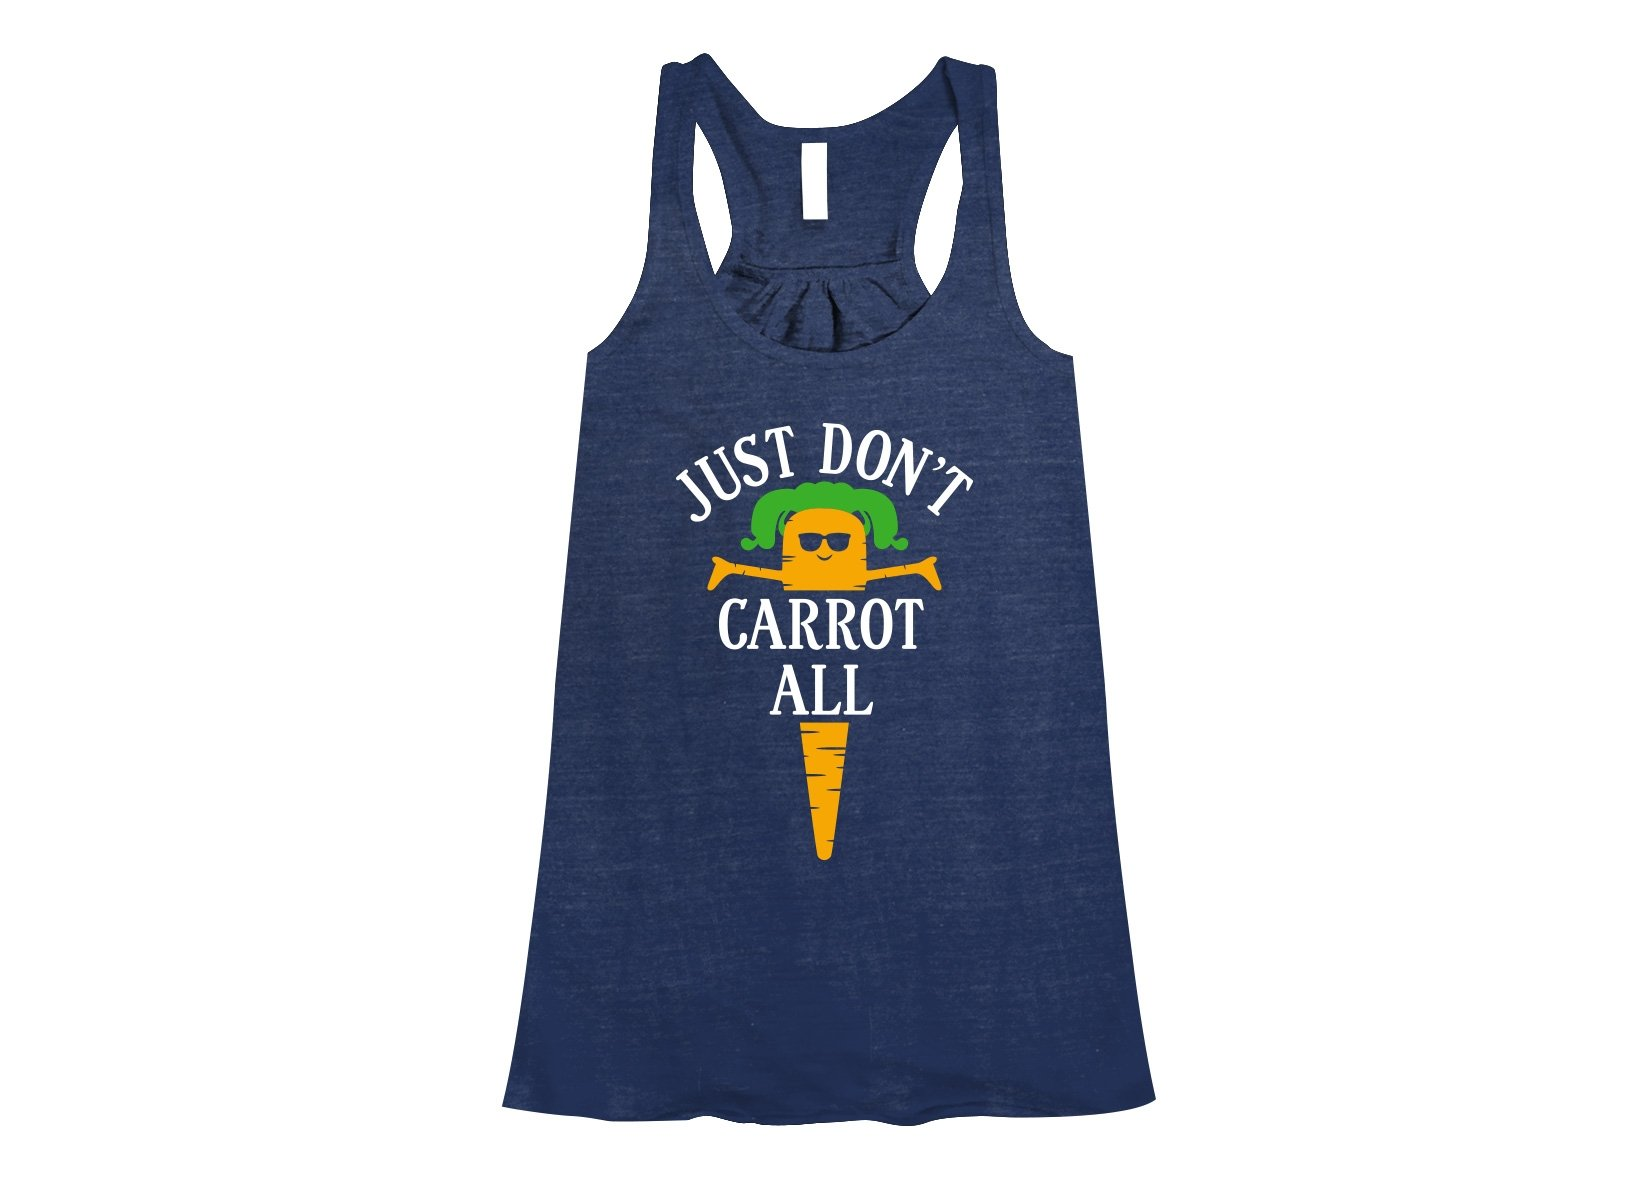 Just Don't Carrot All on Womens Tanks T-Shirt